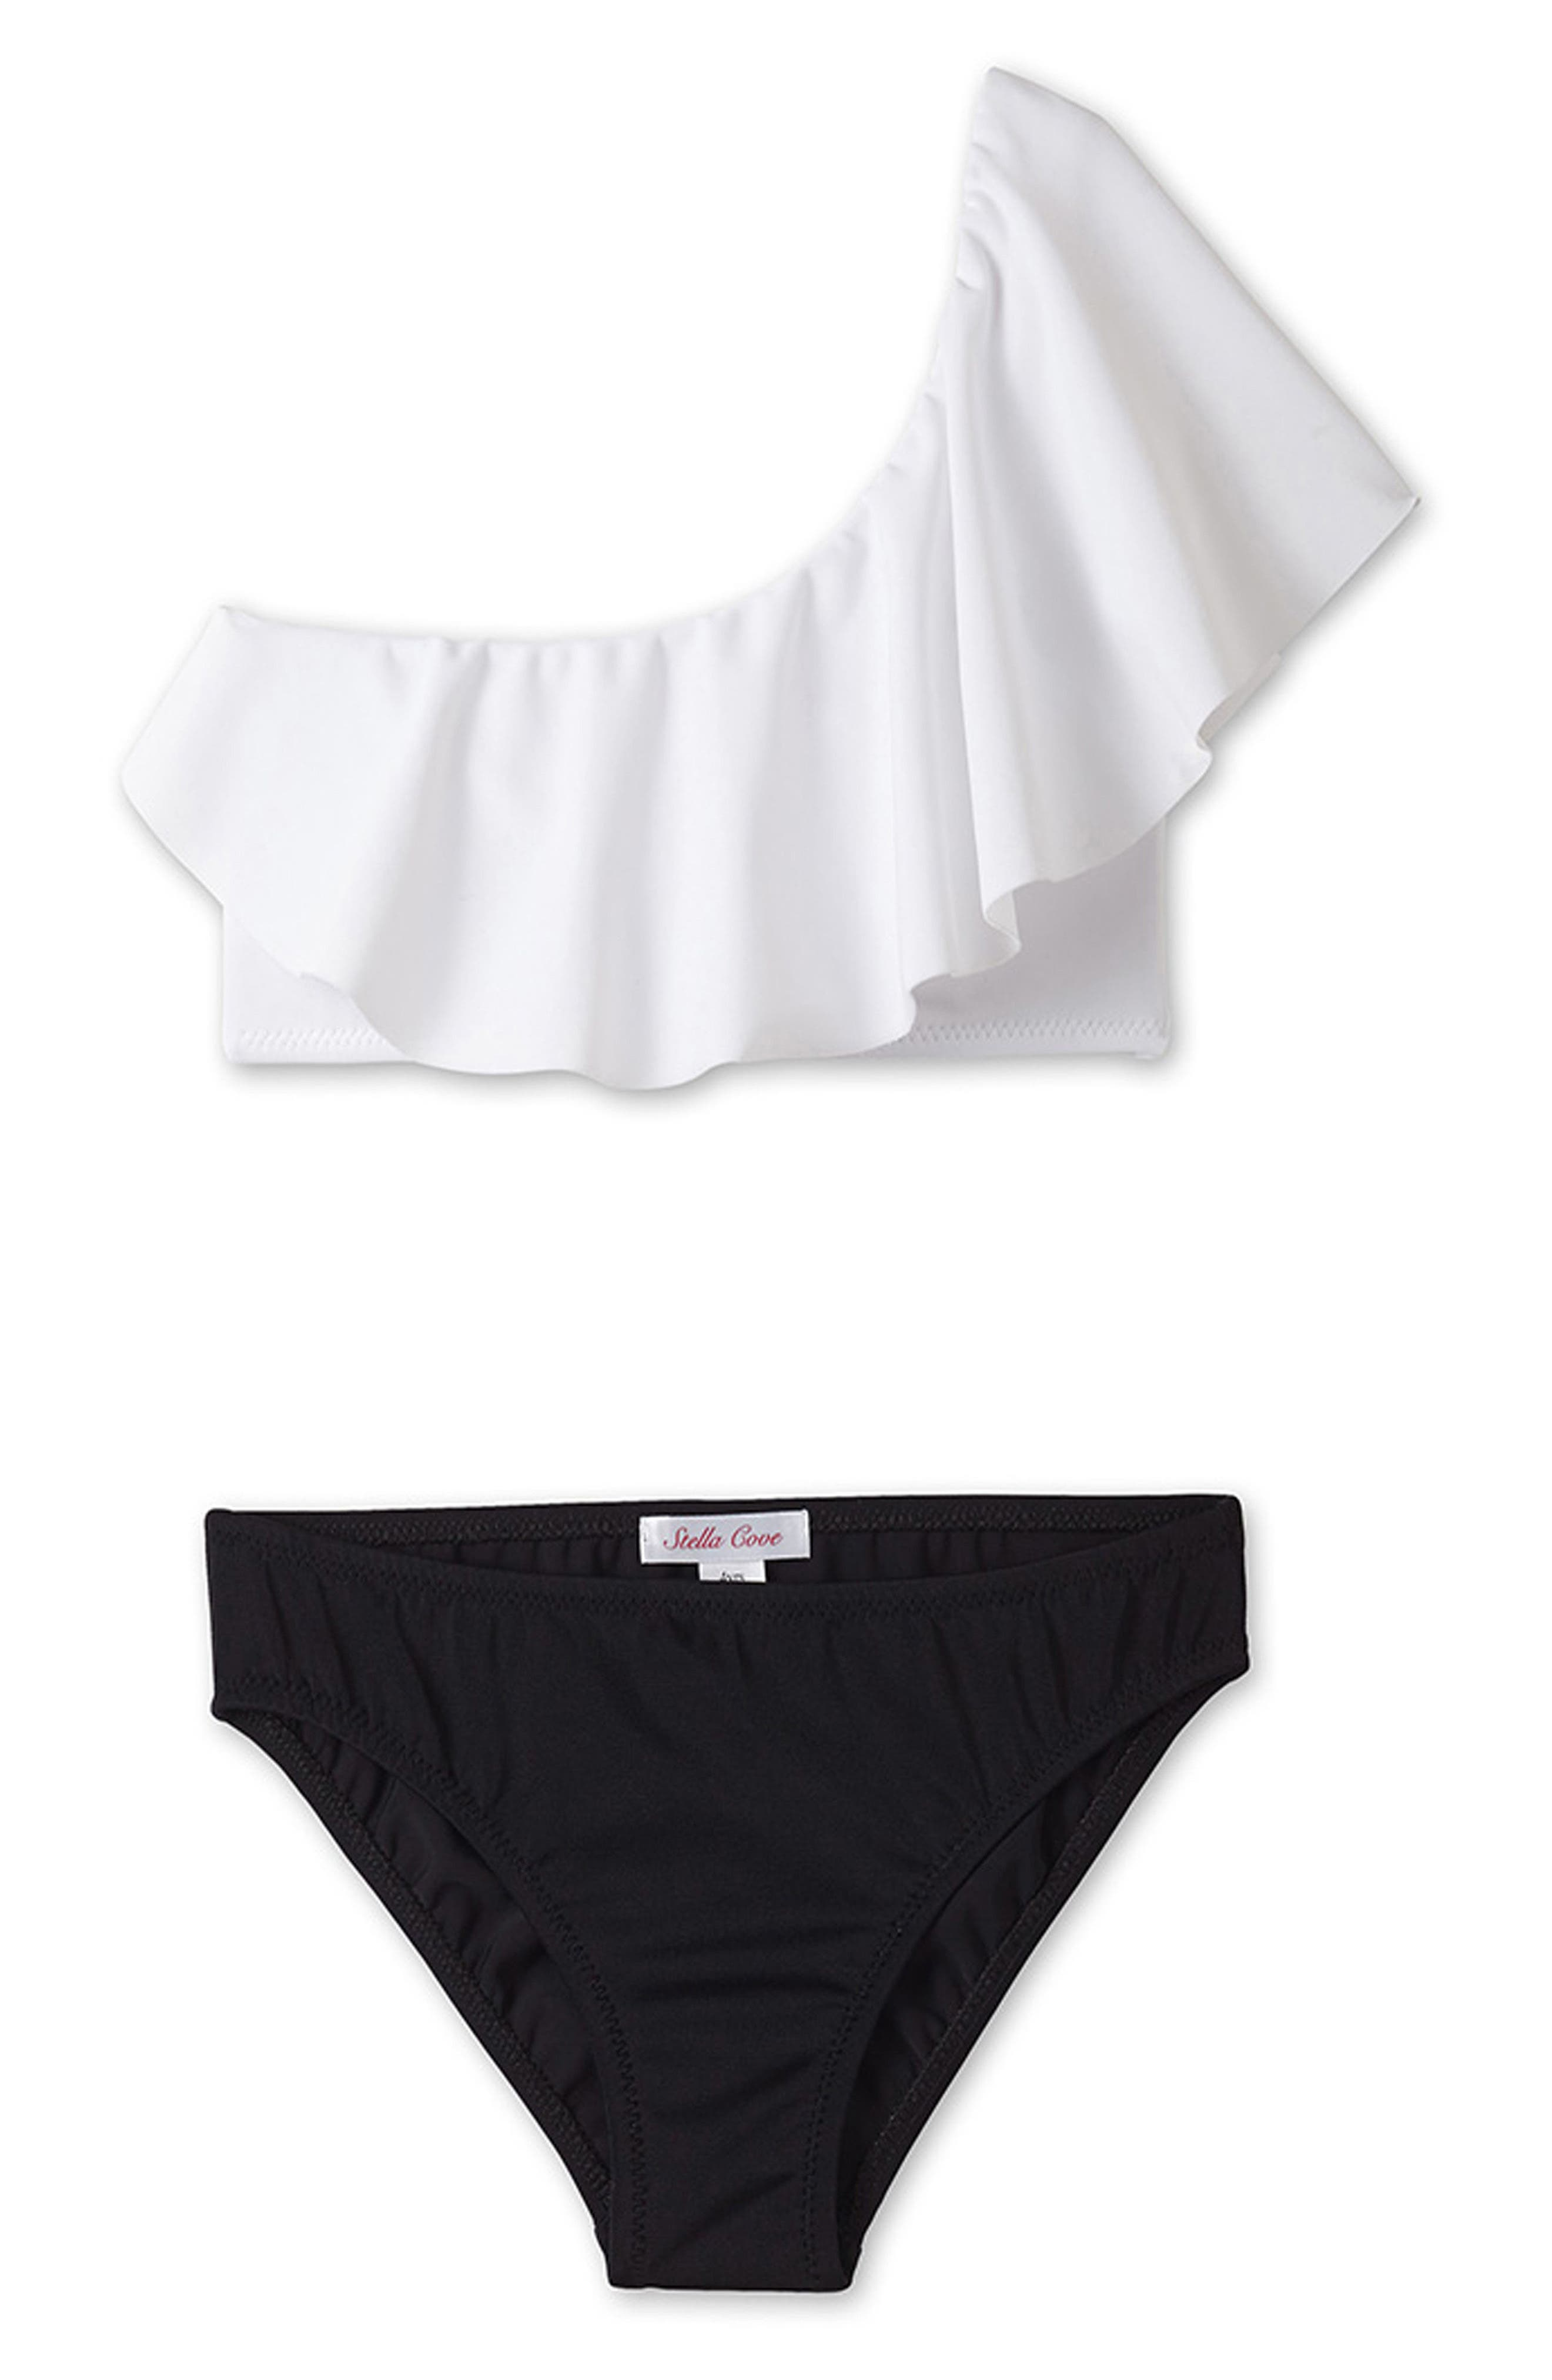 Alternate Image 1 Selected - Stella Cove Two-Piece Swimsuit (Toddler Girls, Little Girls & Big Girls)